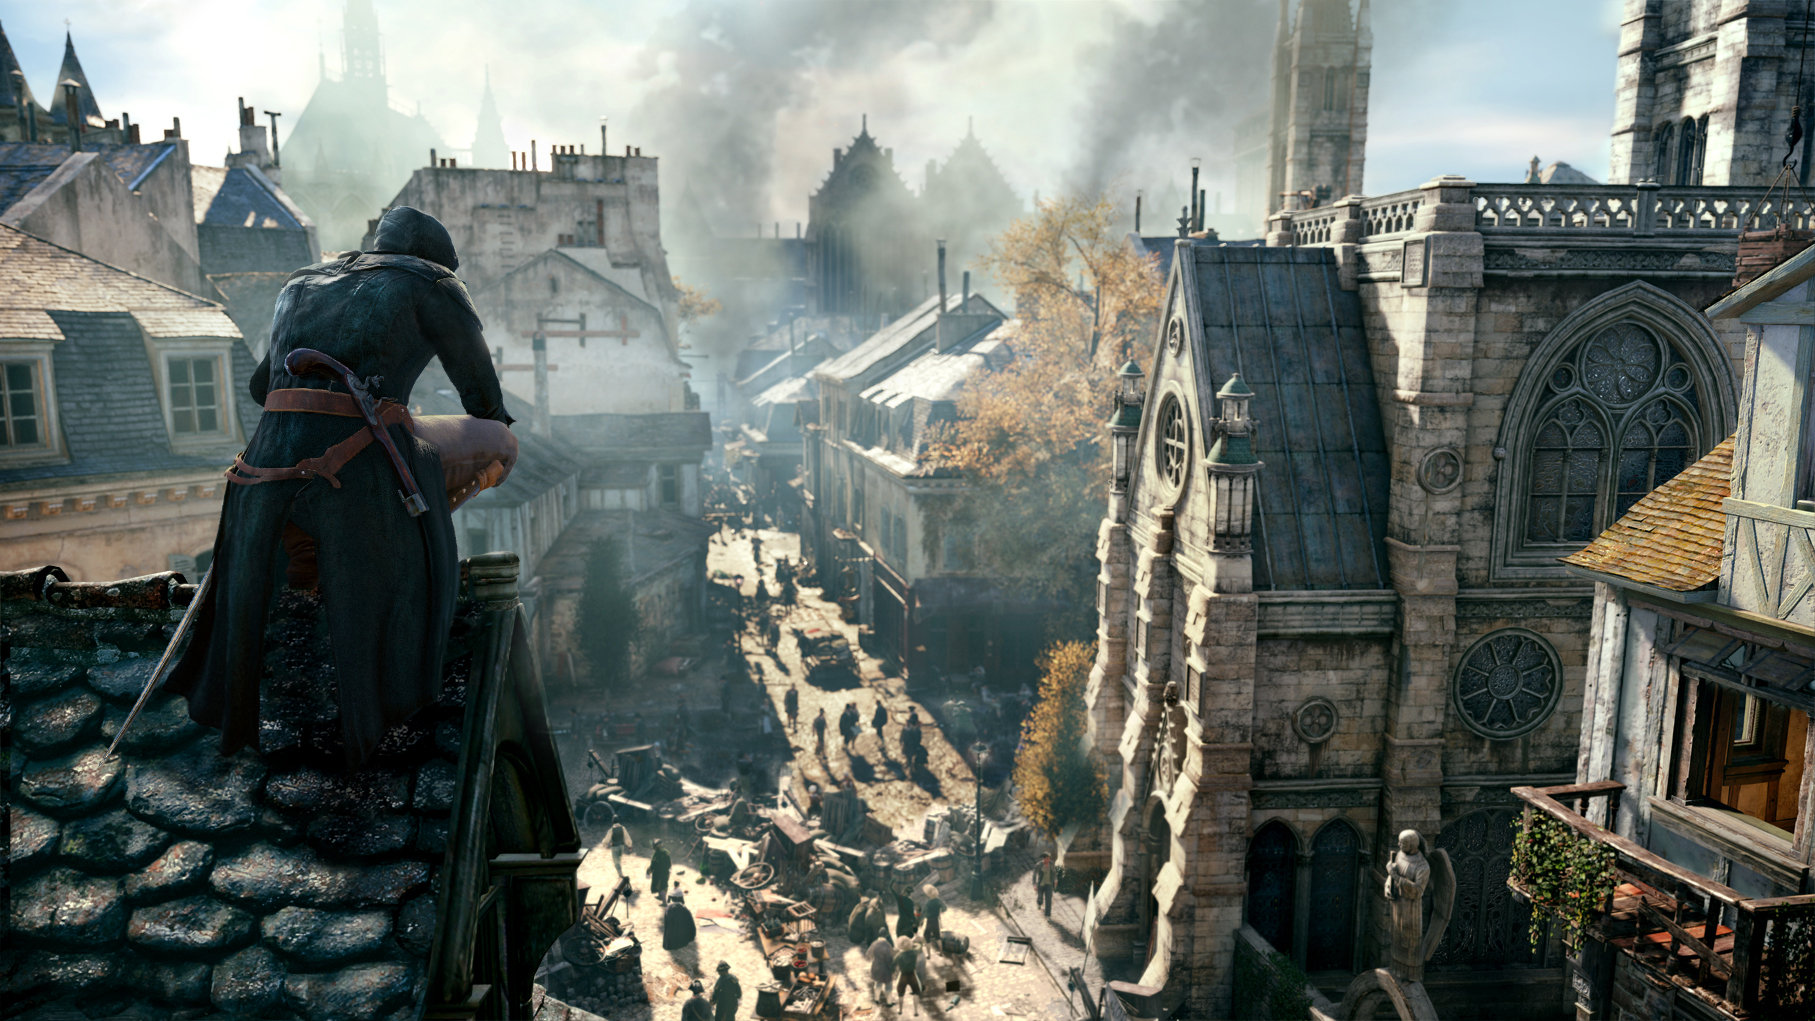 assassins-creed-unity-screenshot-02-ps4-